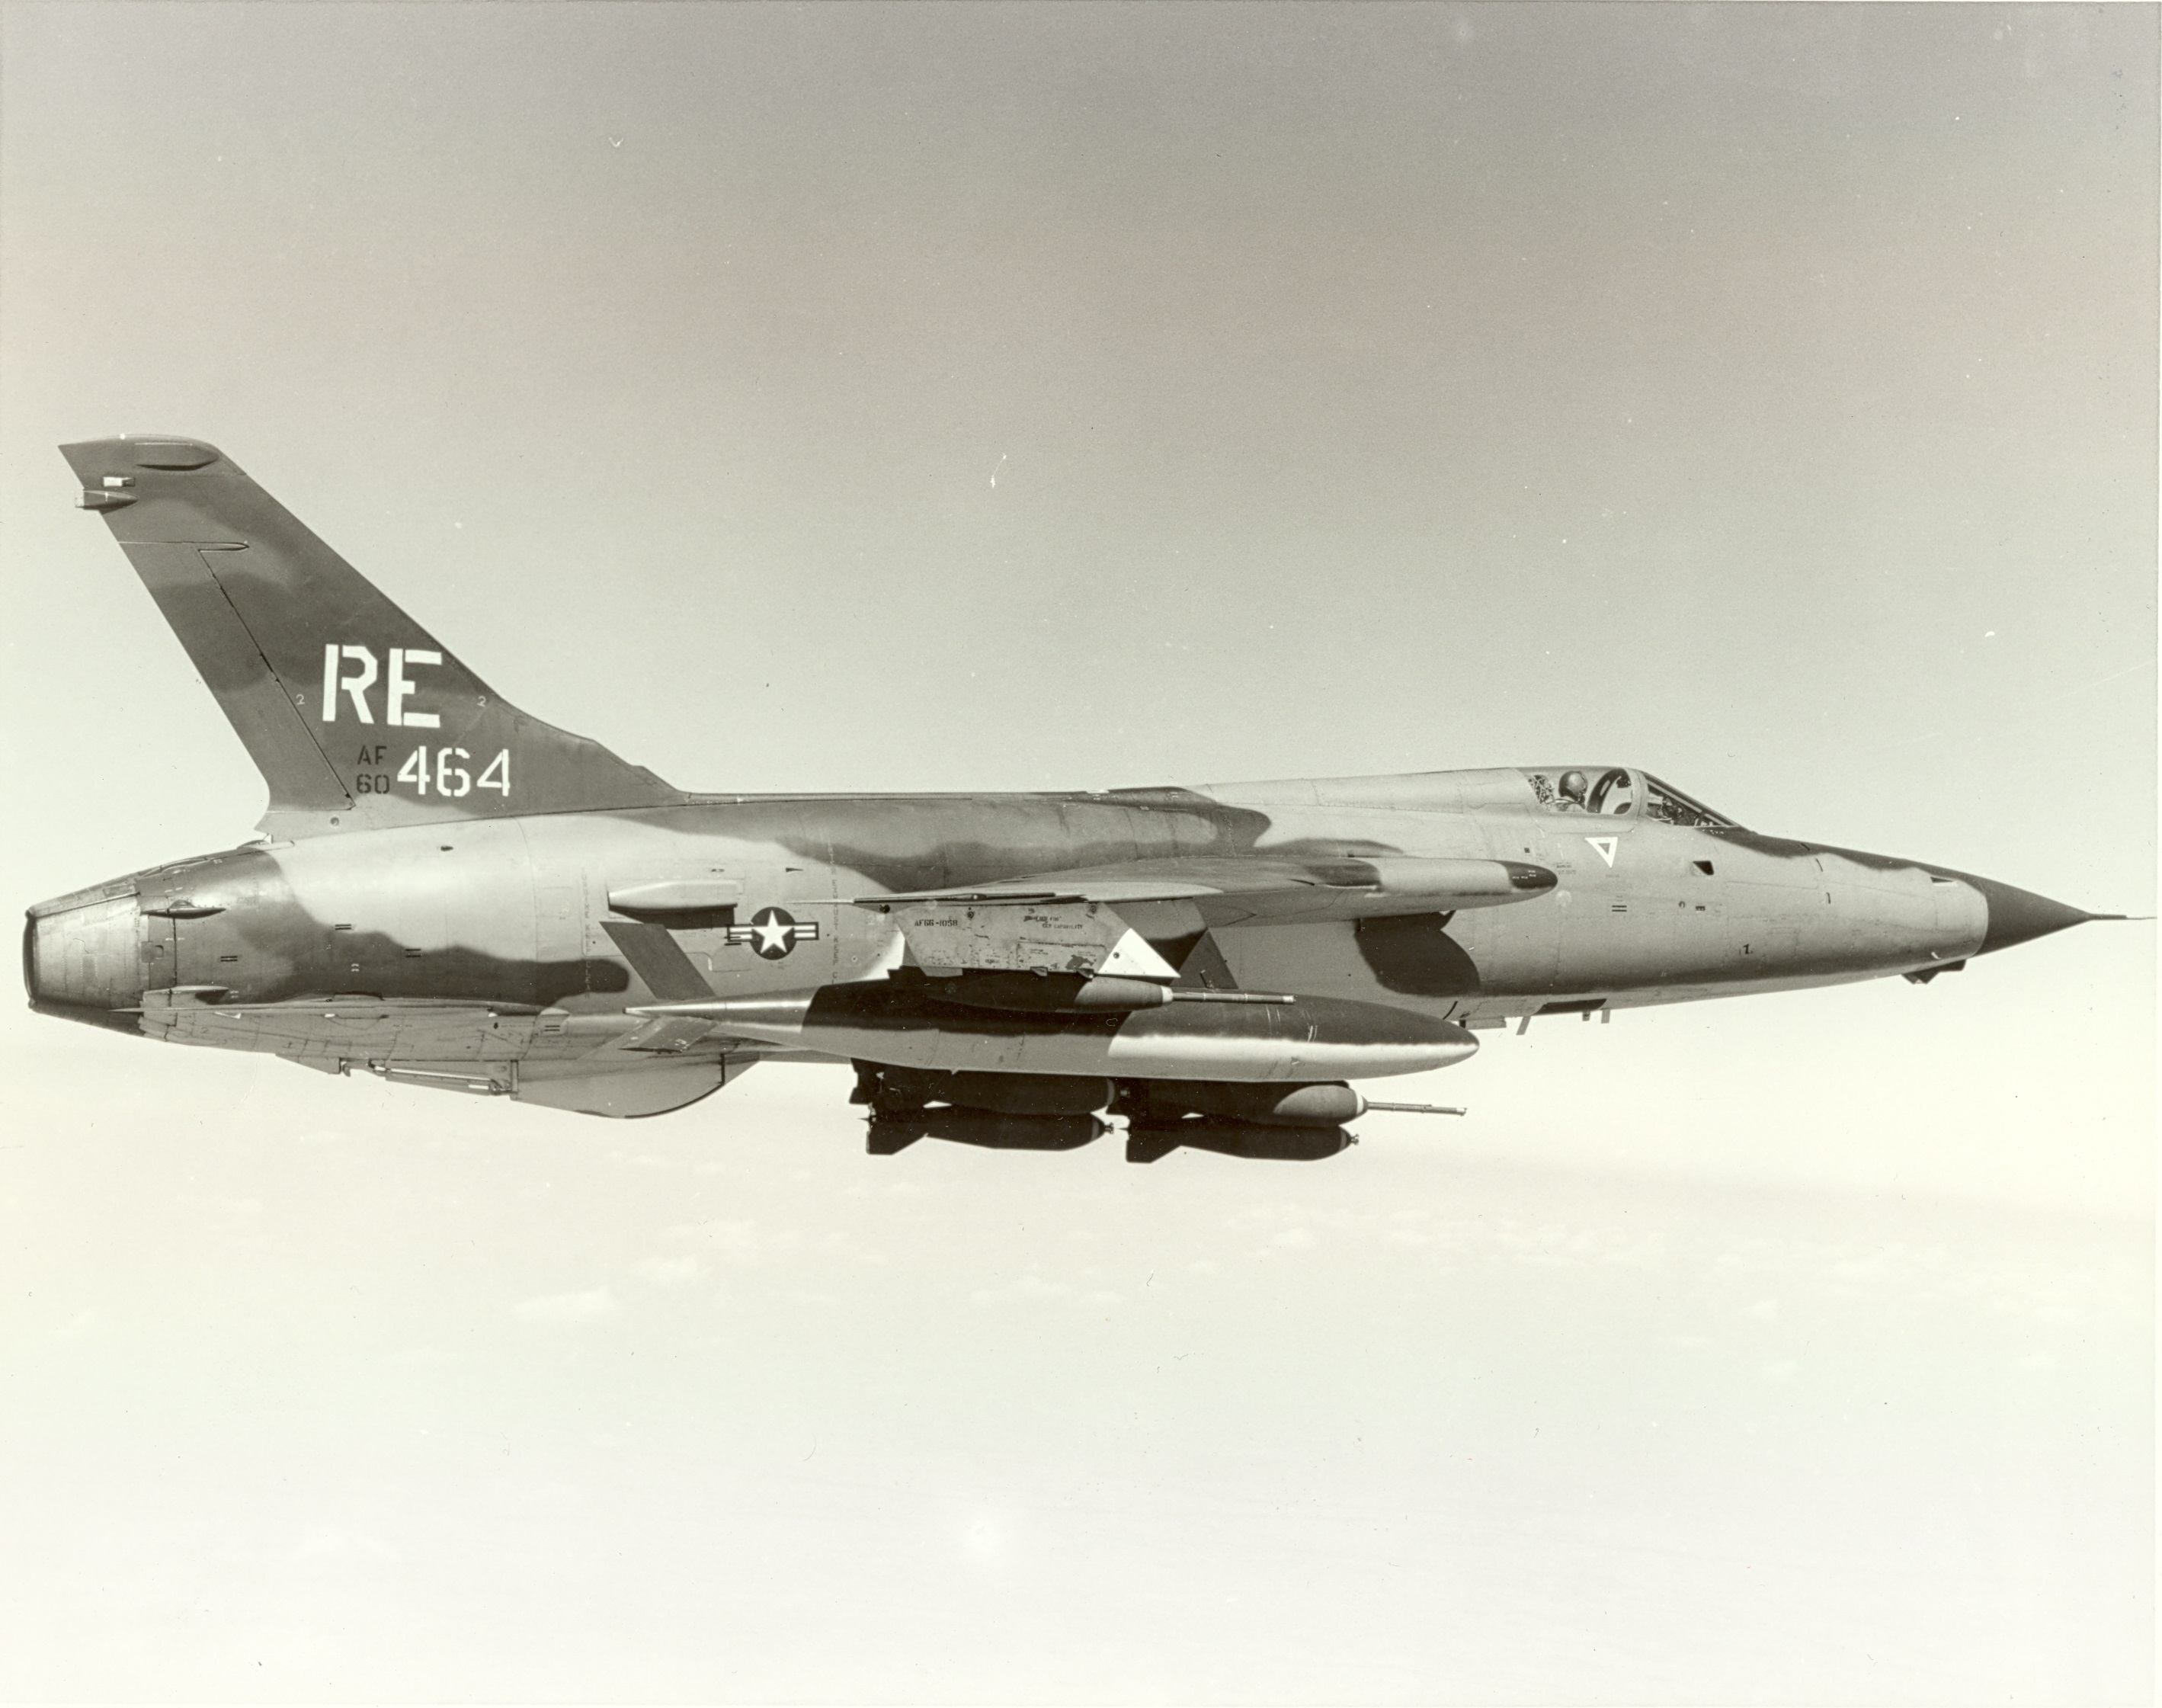 Republic F-105D-10-RE Thunderchief 60-0464, 355th Tactical Fighter Wing, Takhli RTAFB. (U.S. Air Force)